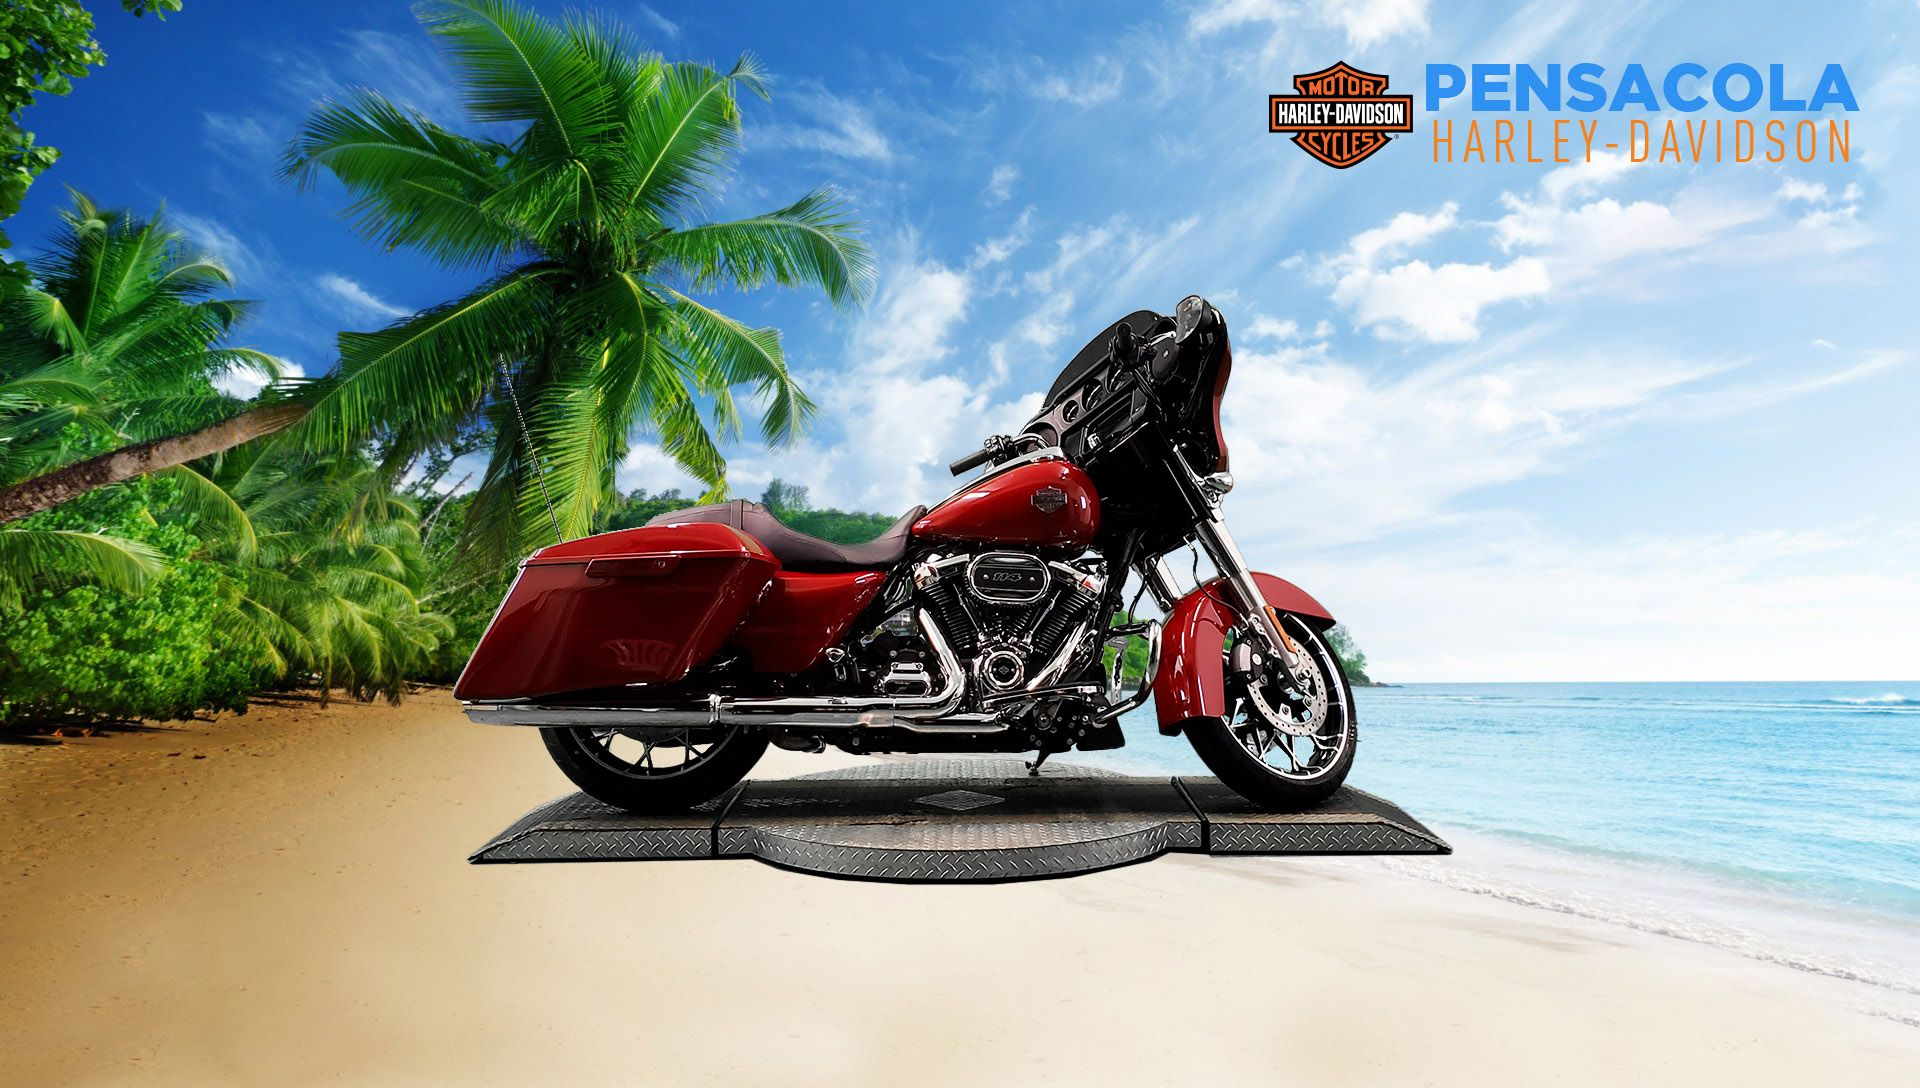 New 2021 Harley-Davidson Street Glide Special FLHXS